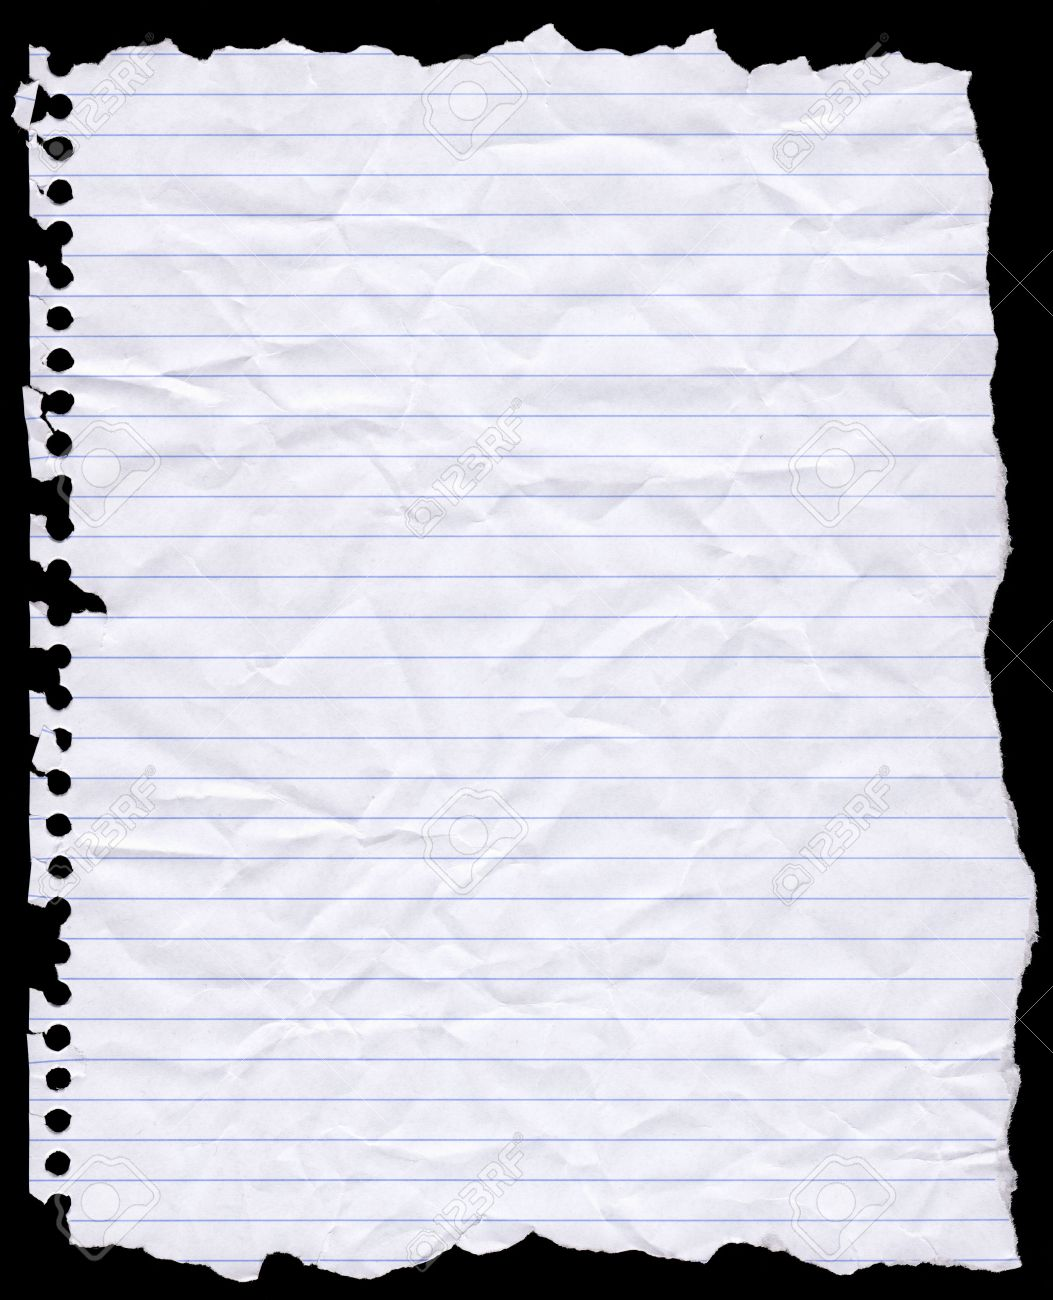 a piece of torn lined writing paper from a wire bound notebook